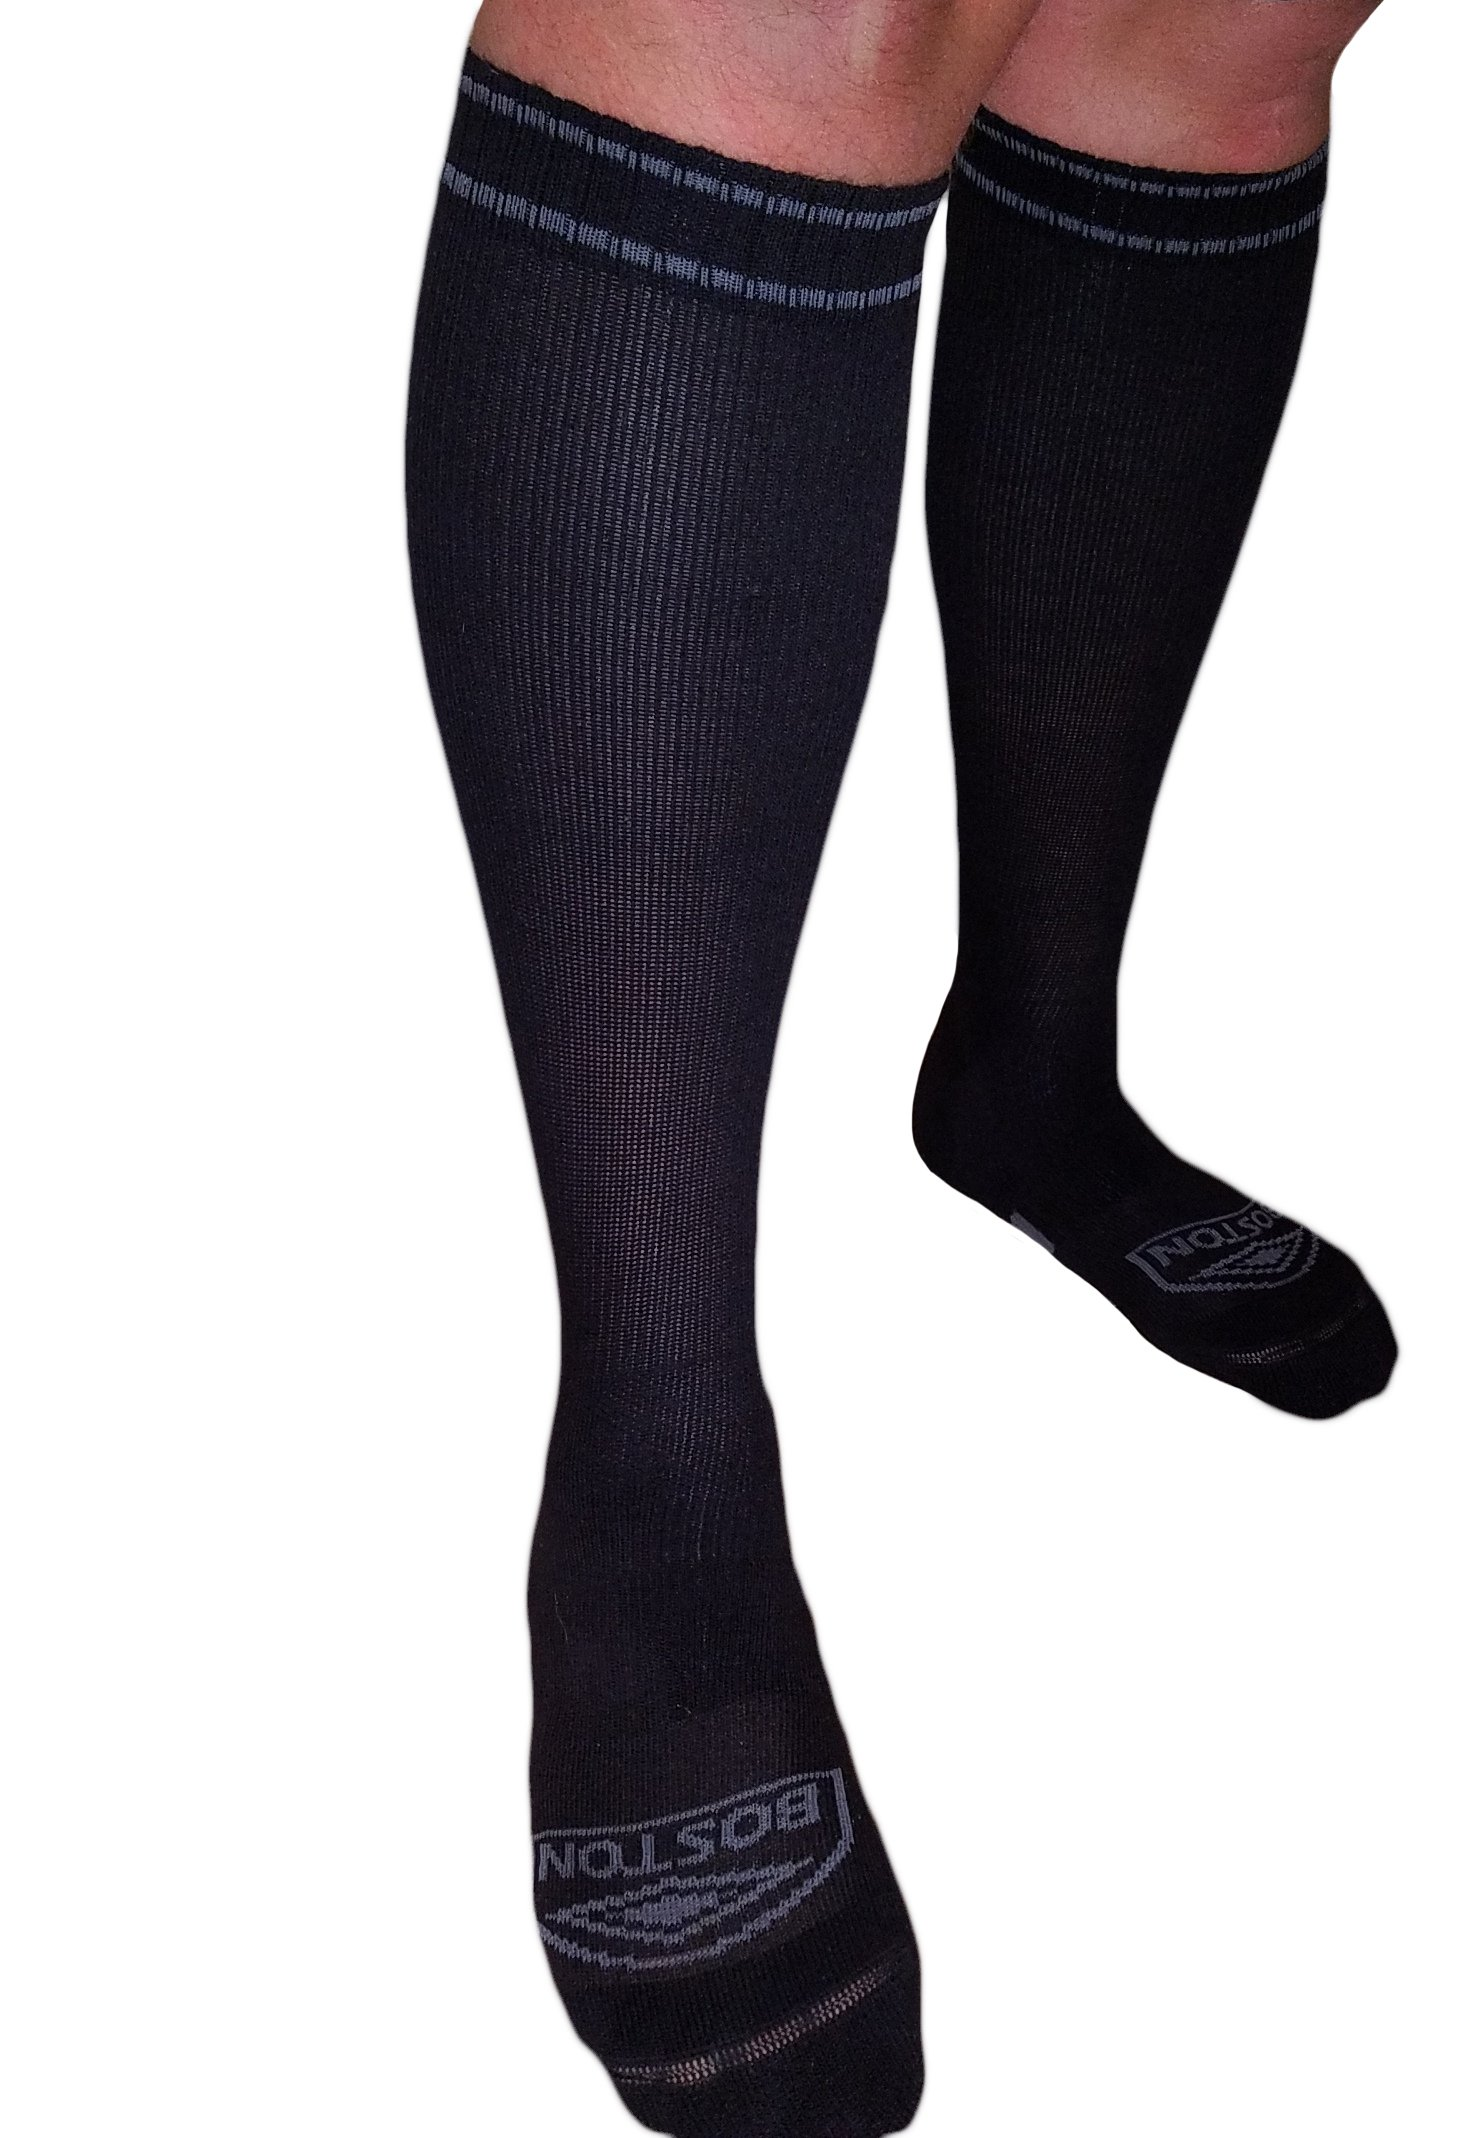 MICODEMA Compression Socks Large Legs - Big Foot and Leg with Ankle and Arch Support | Firm Gradient Pressure 28 mmHg, Knee High Plus Size Premium Hosiery | Black X-Large